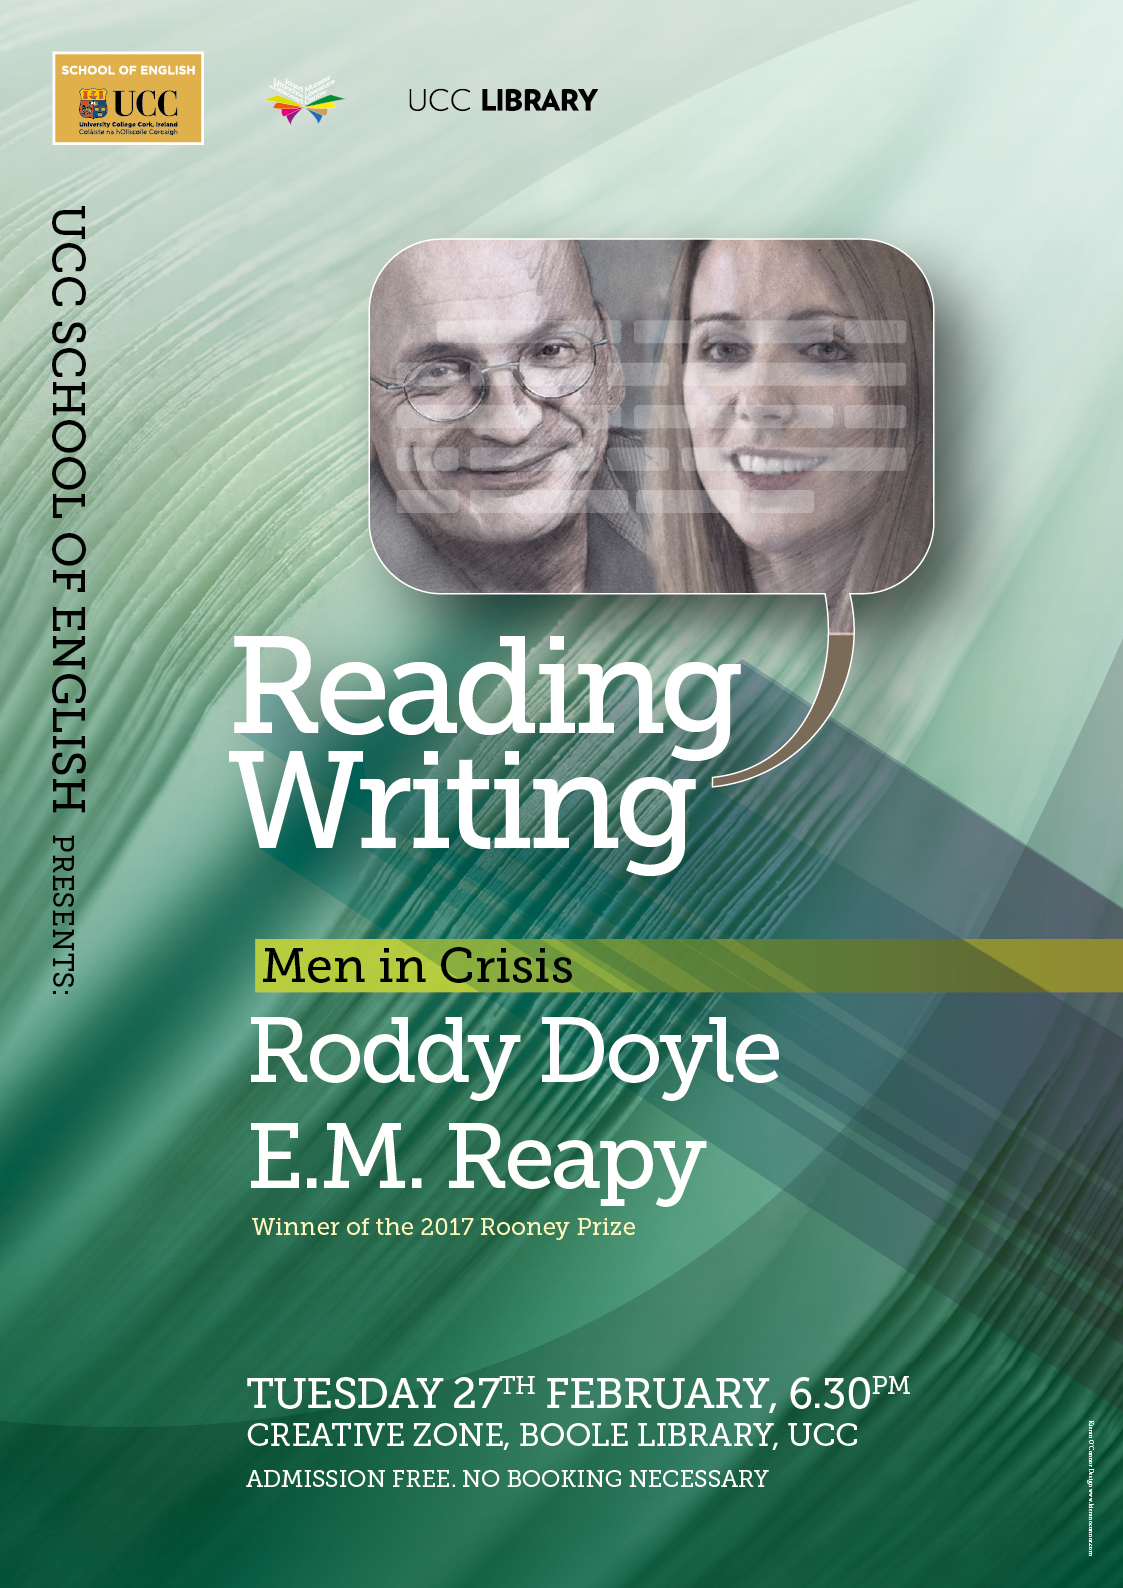 Featuring Booker Prize winner Roddy Doyle and Rooney Prize winner E. M. Reapy.